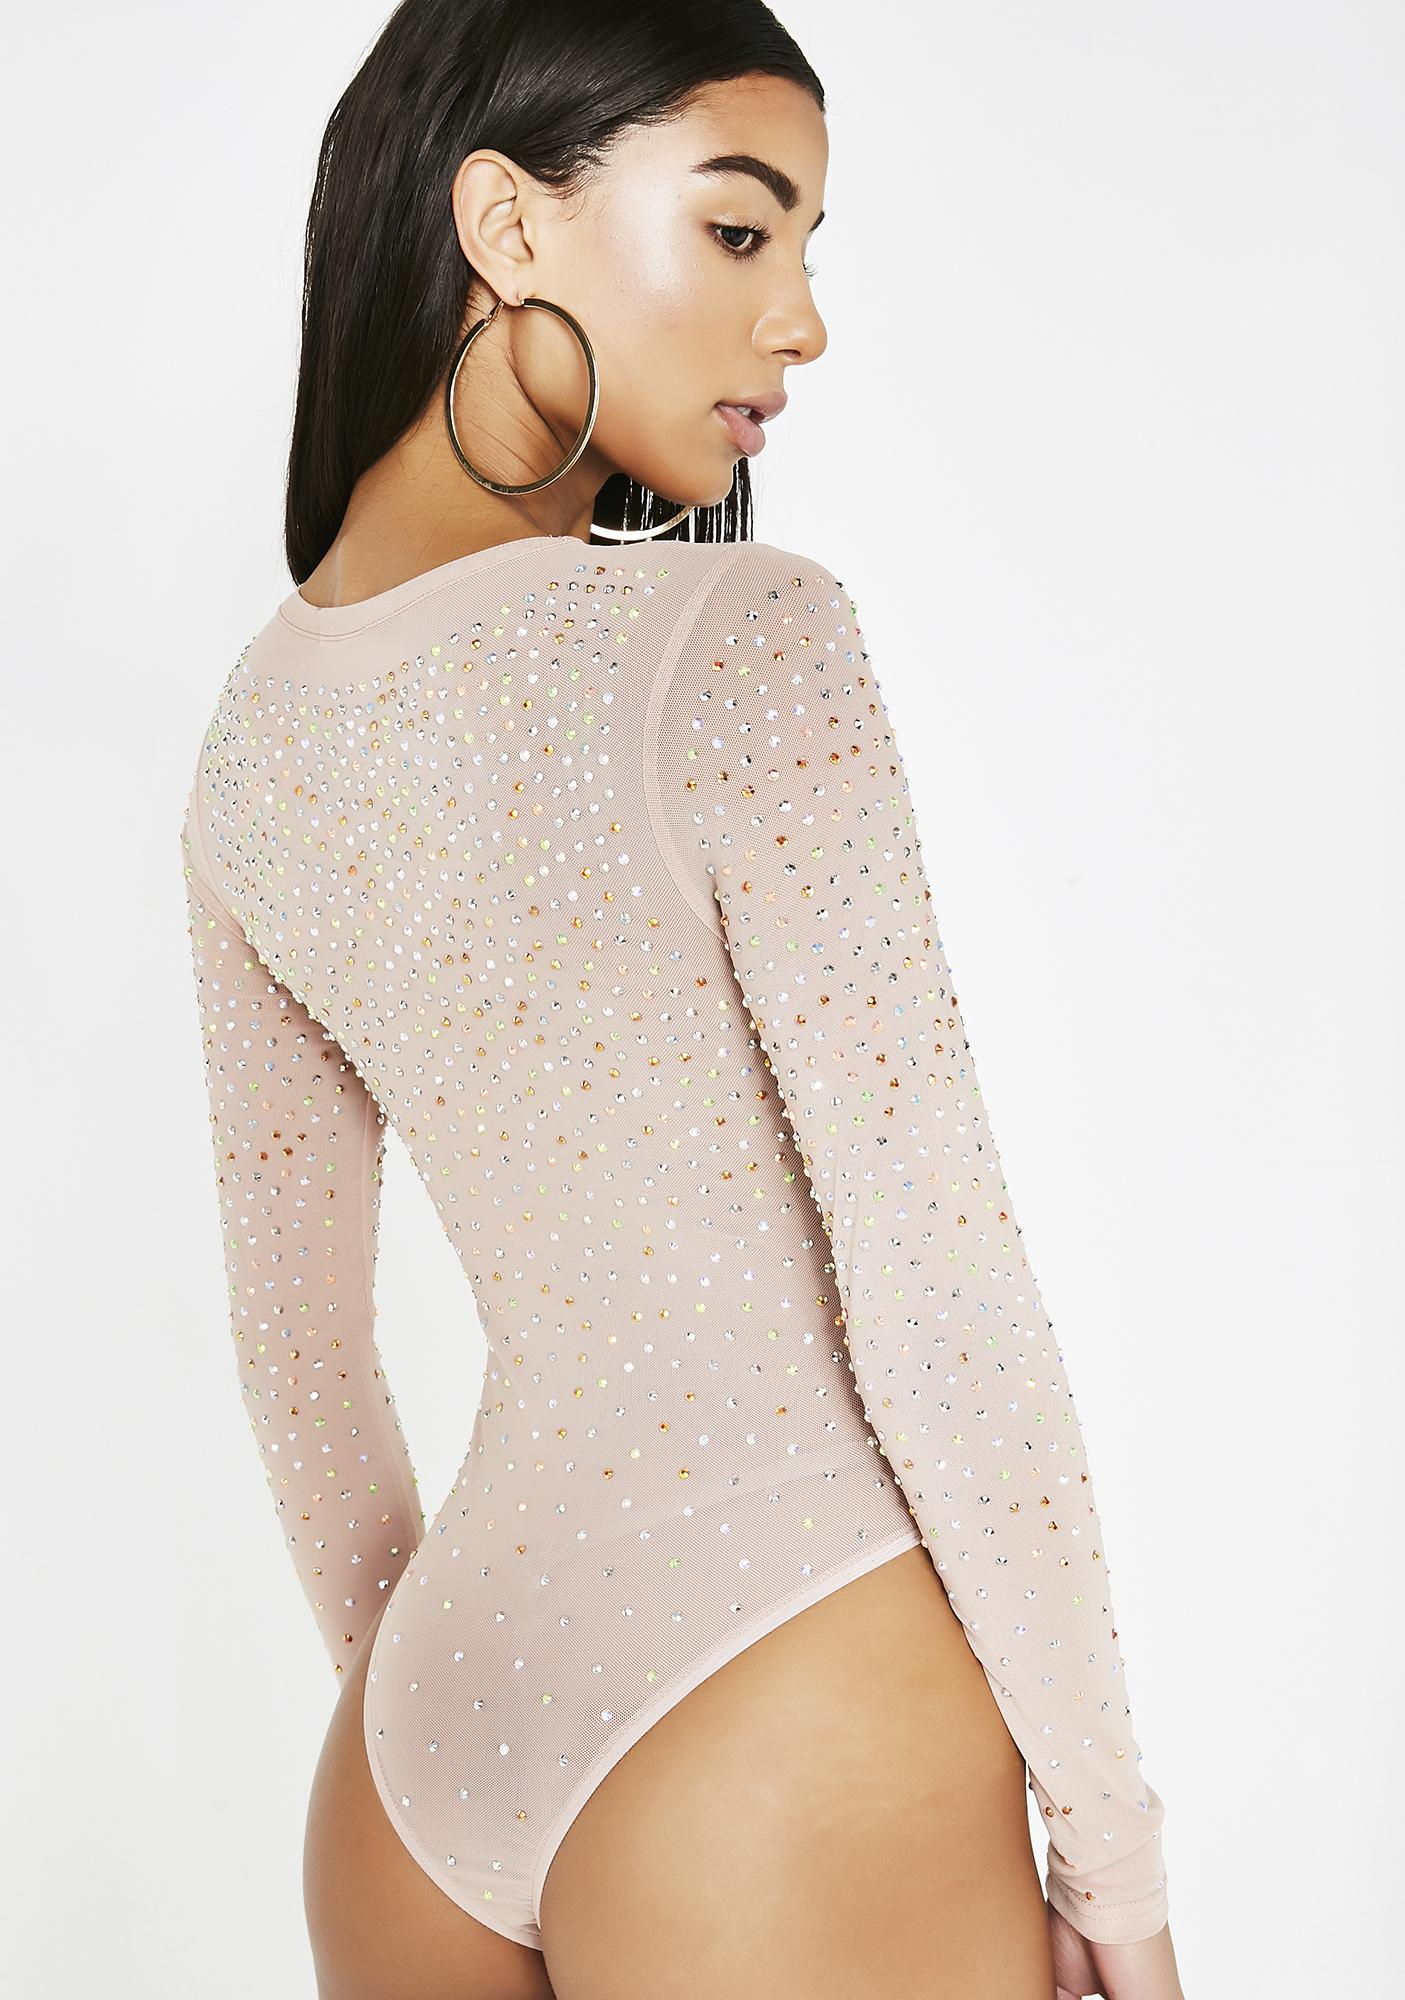 Bling Obsessed Sheer Bodysuit